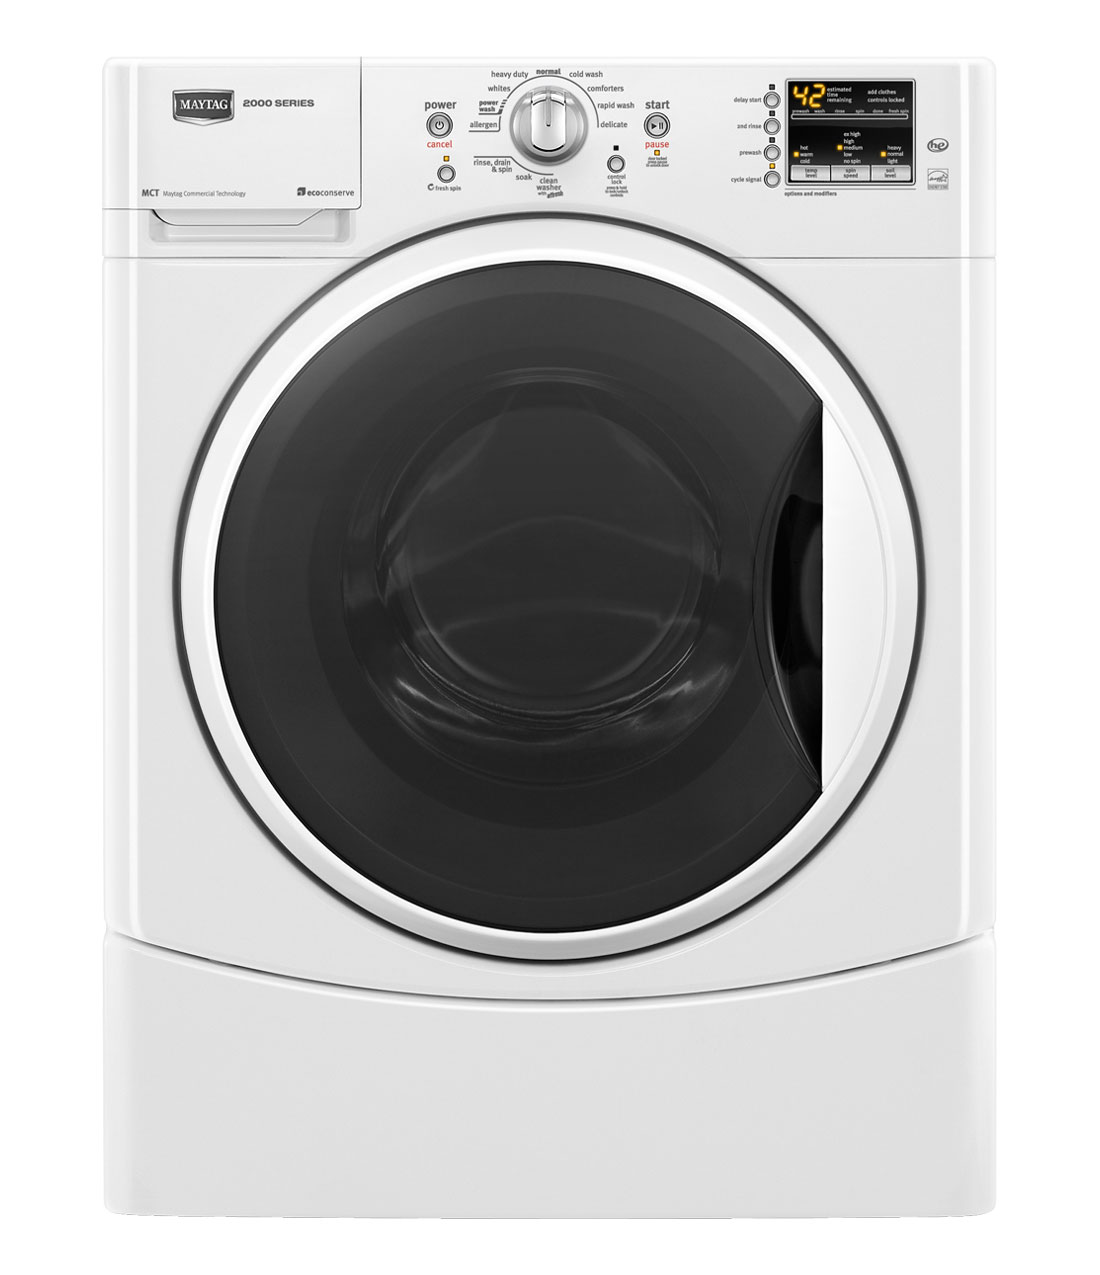 Maytag Performance 3.5 cu ft High-Efficiency Front-Load Washers (White) ENERGY STAR (Model: MHWE201YW)